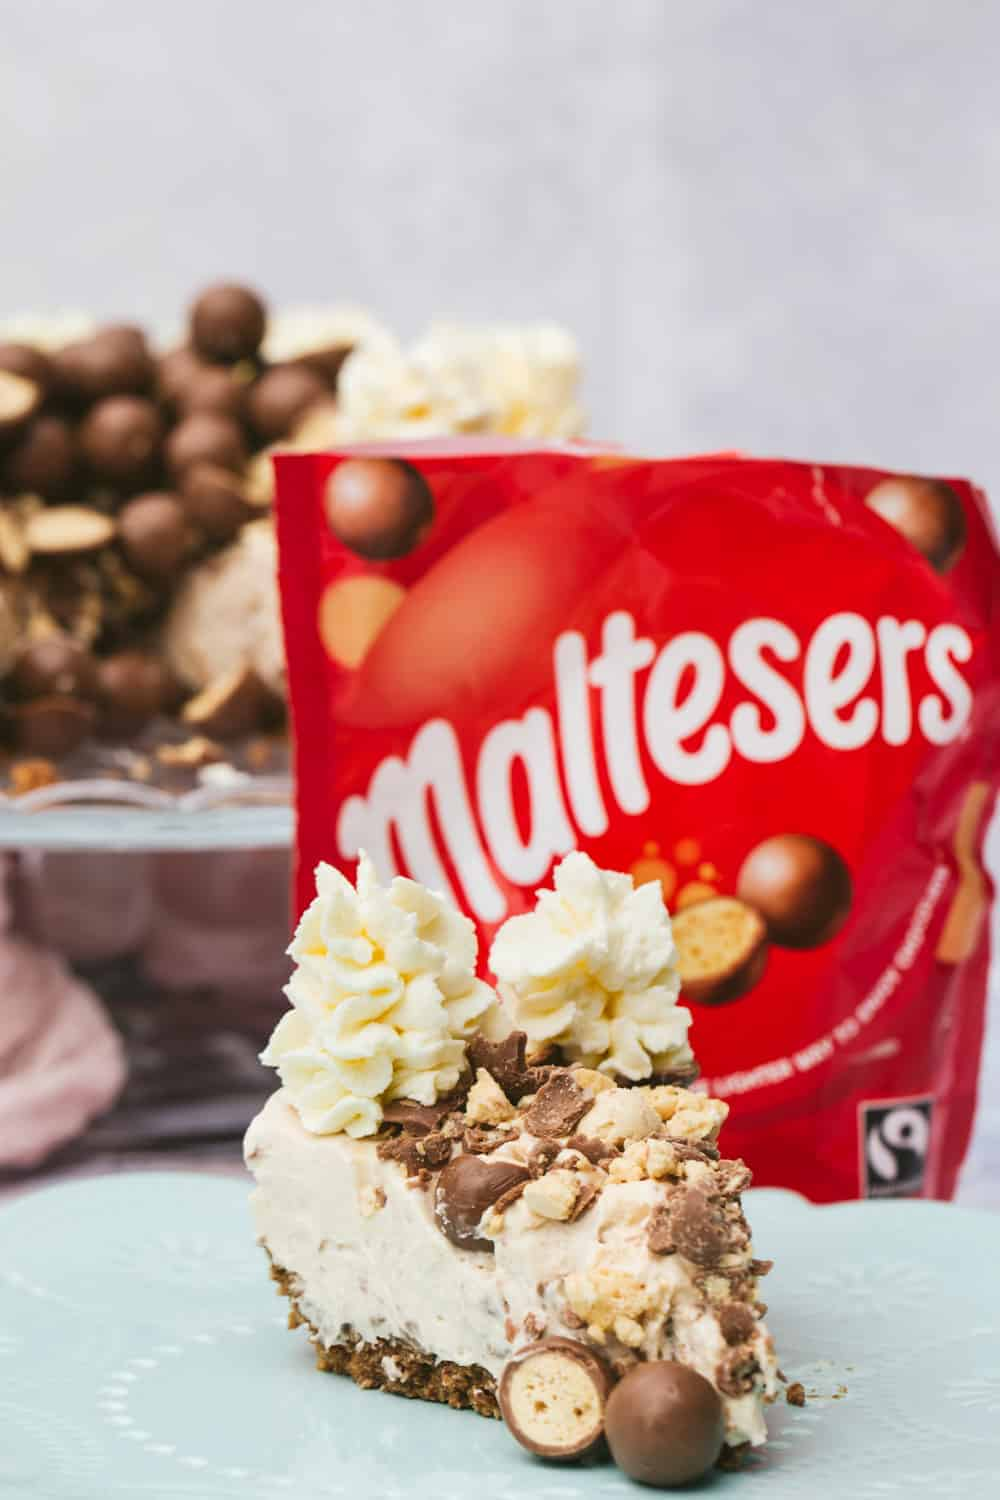 A slice of Malteser cheesecake in the foreground and a bag of red Maltesers in the background